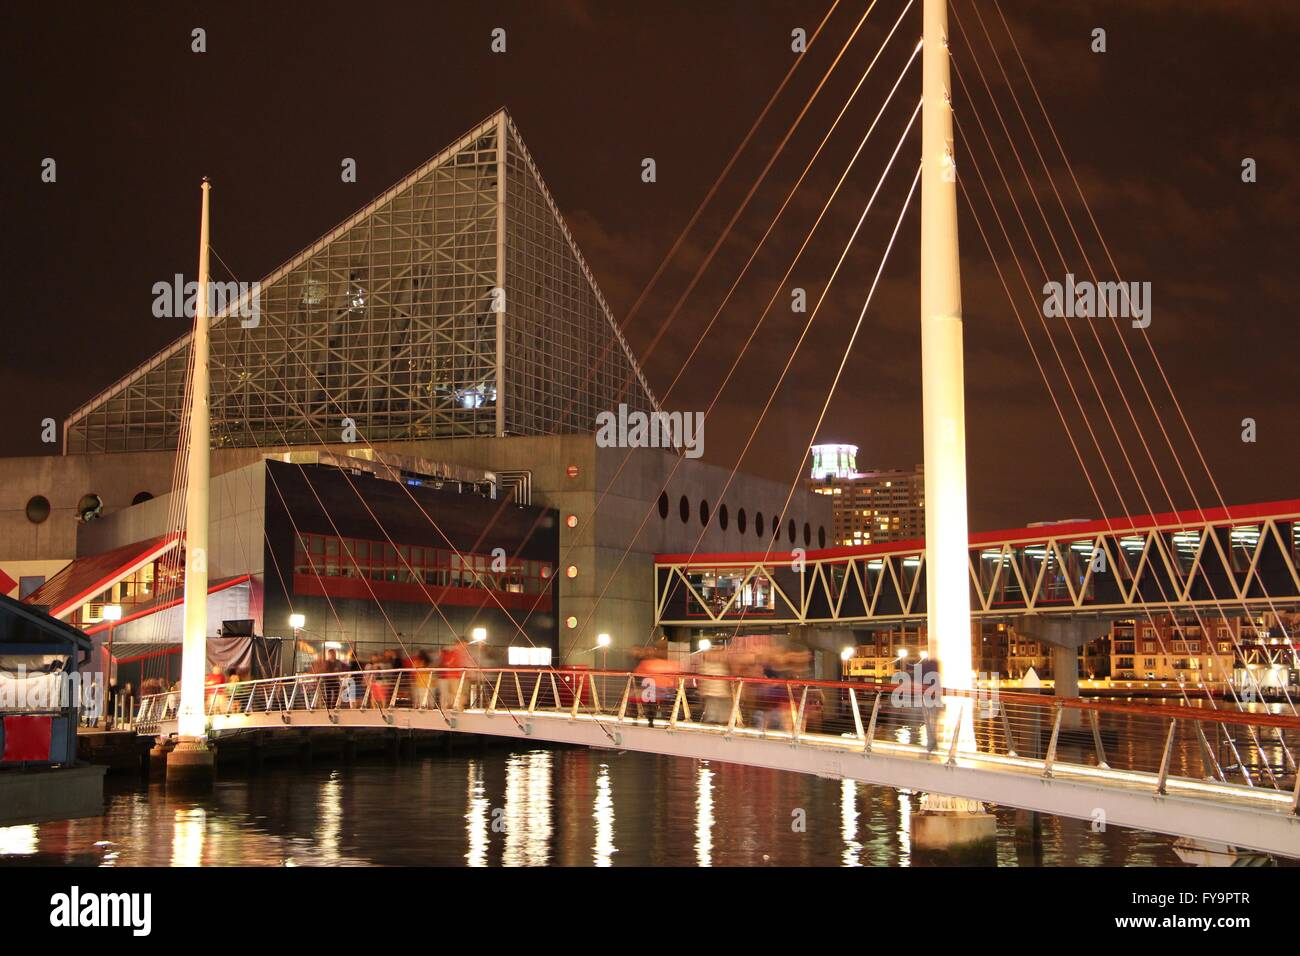 Baltimore Inner Harbor at night - Stock Image